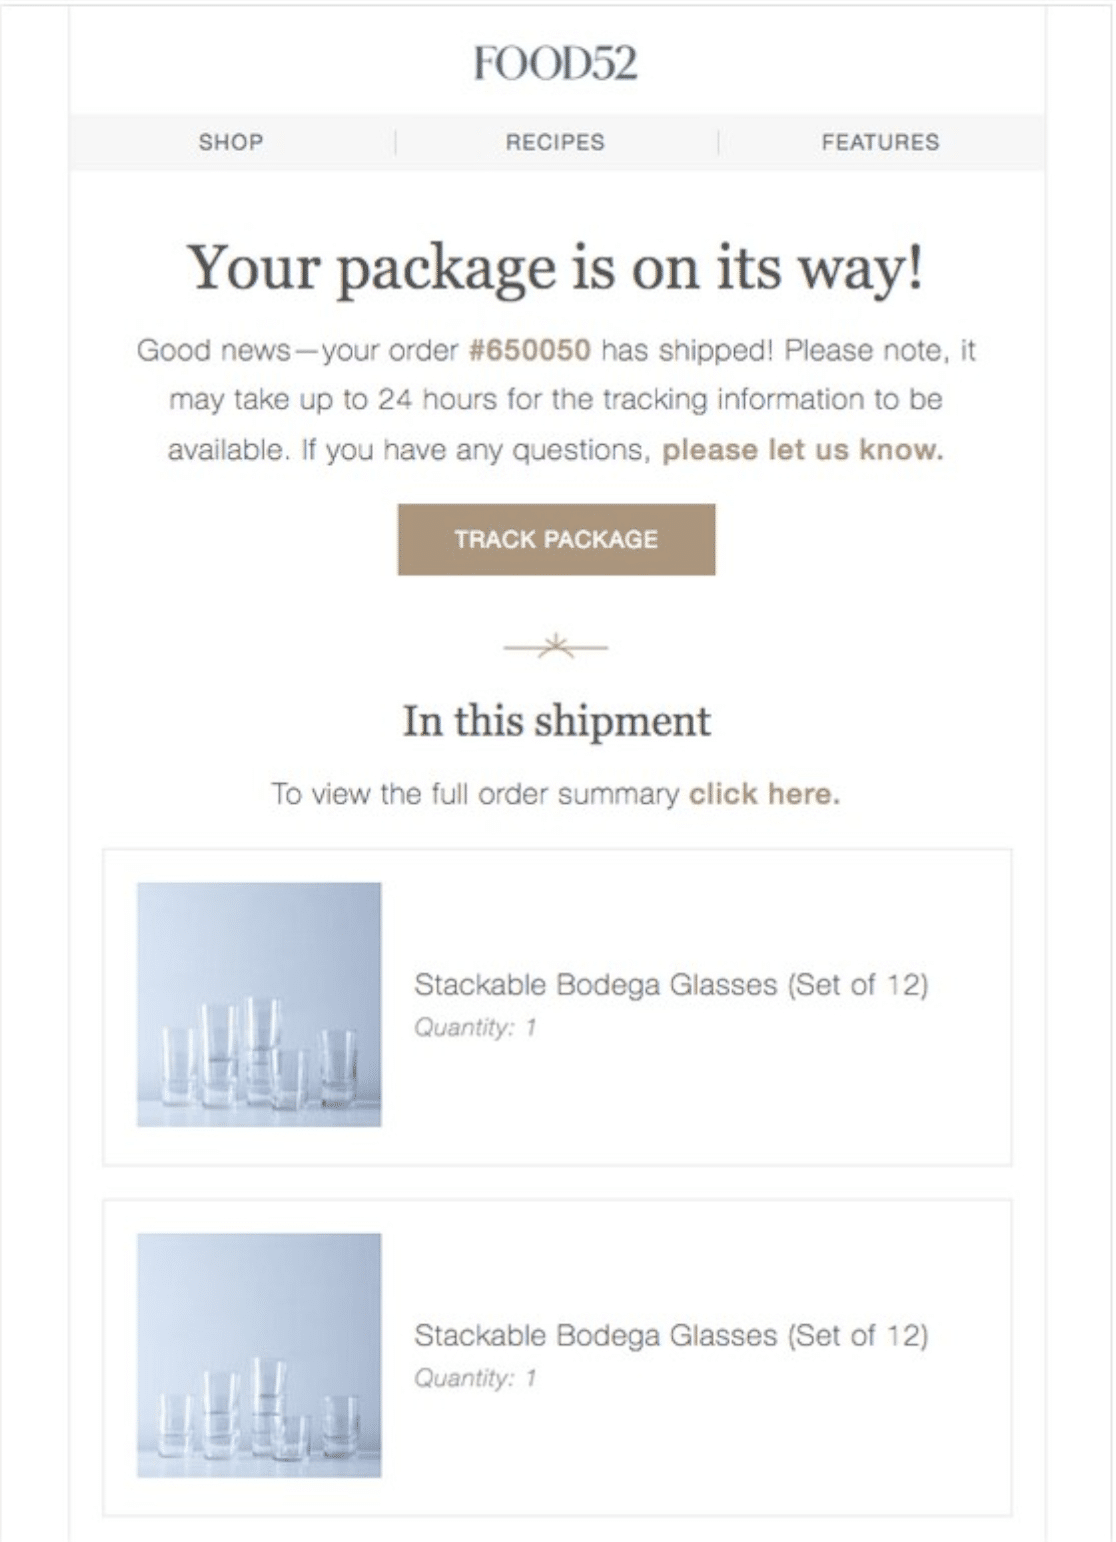 Automated order shipped email